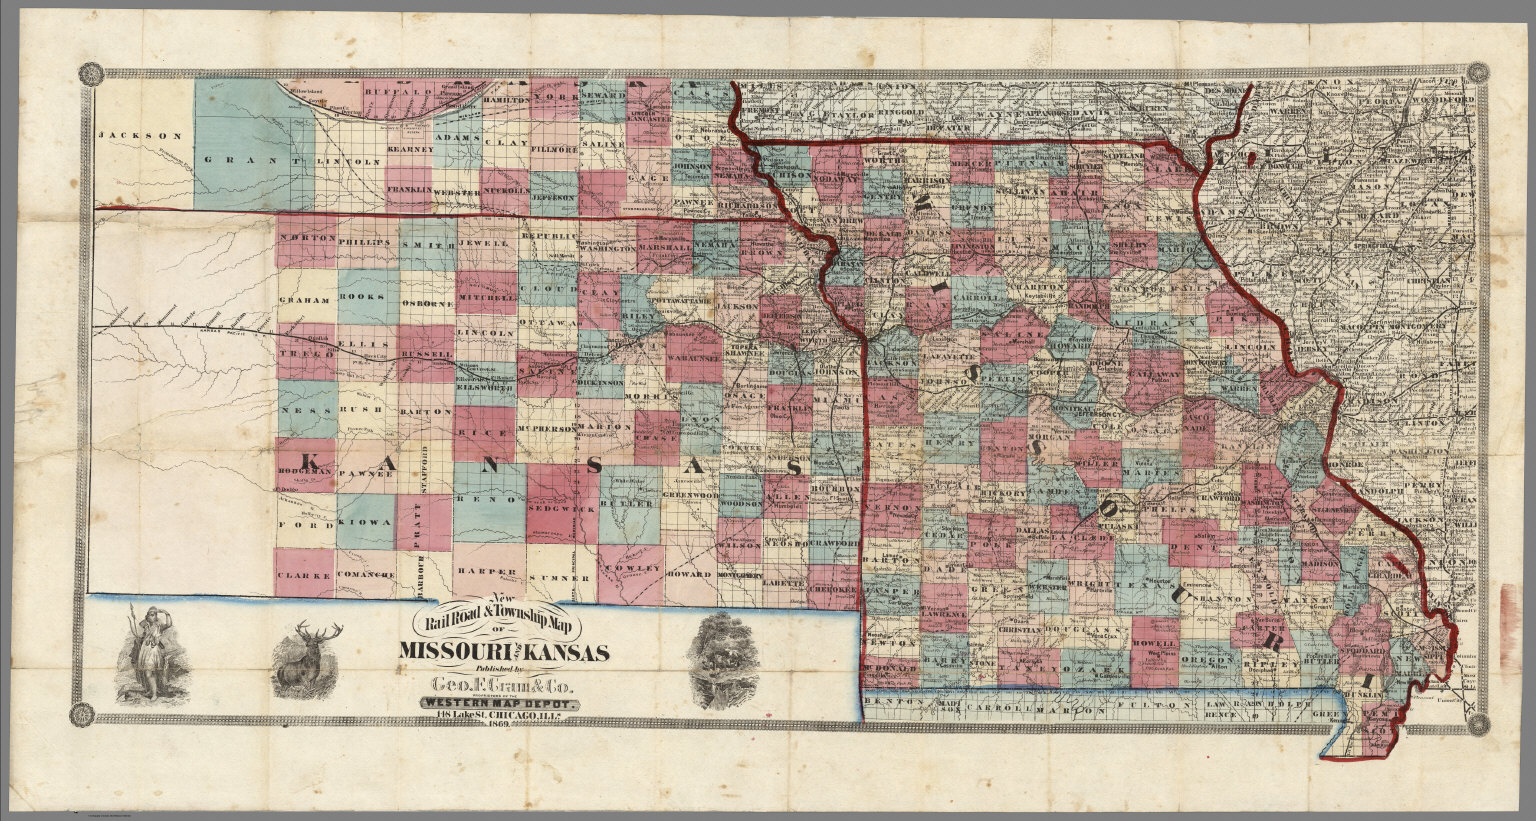 New Rail Road Township Map Of Missouri And Kansas David Rumsey - Road map of missouri